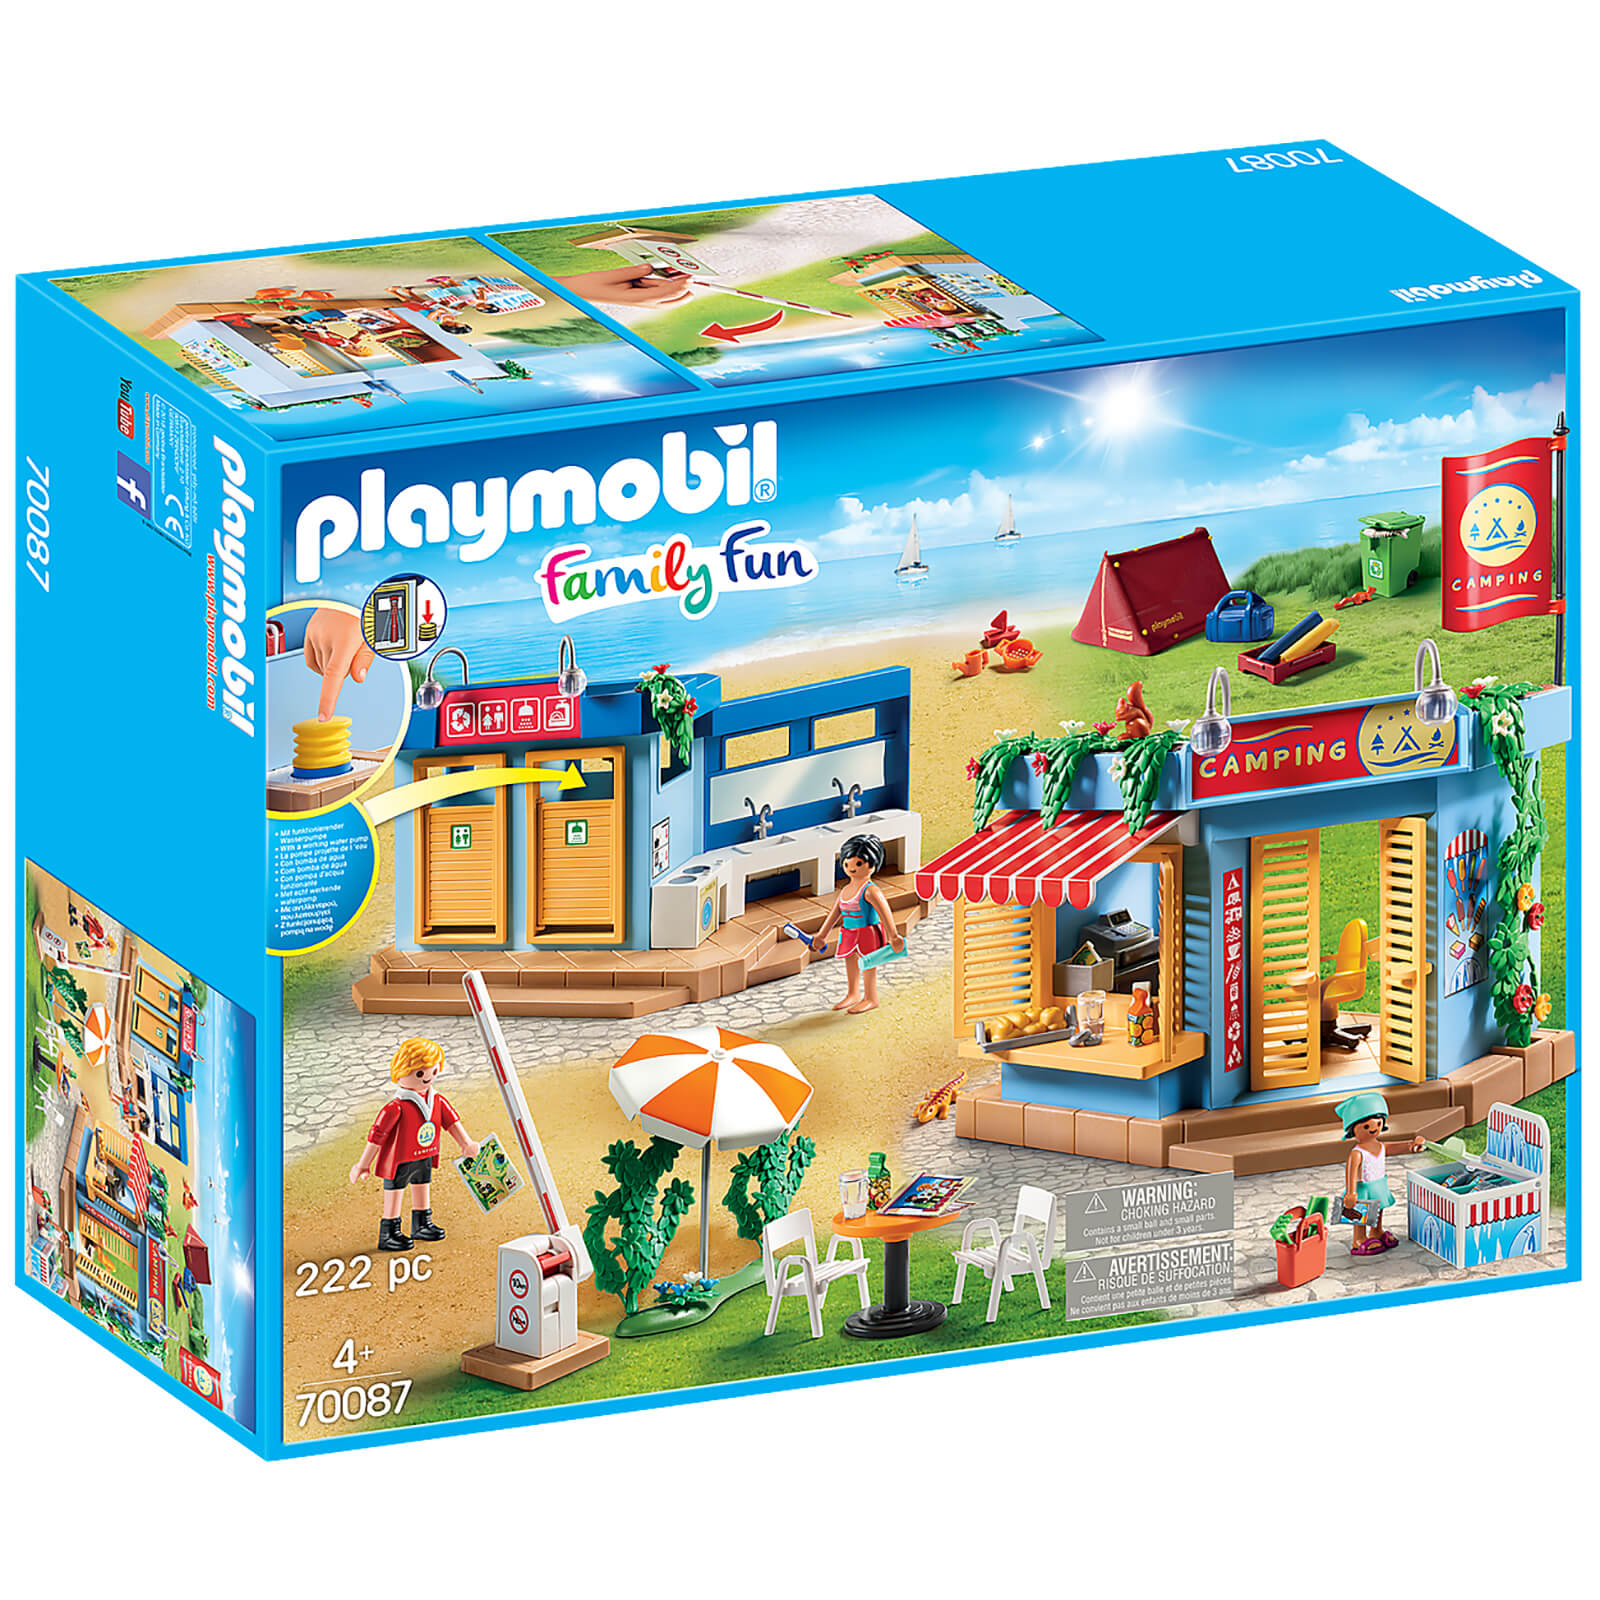 Image of Playmobil Family Fun Large Campground